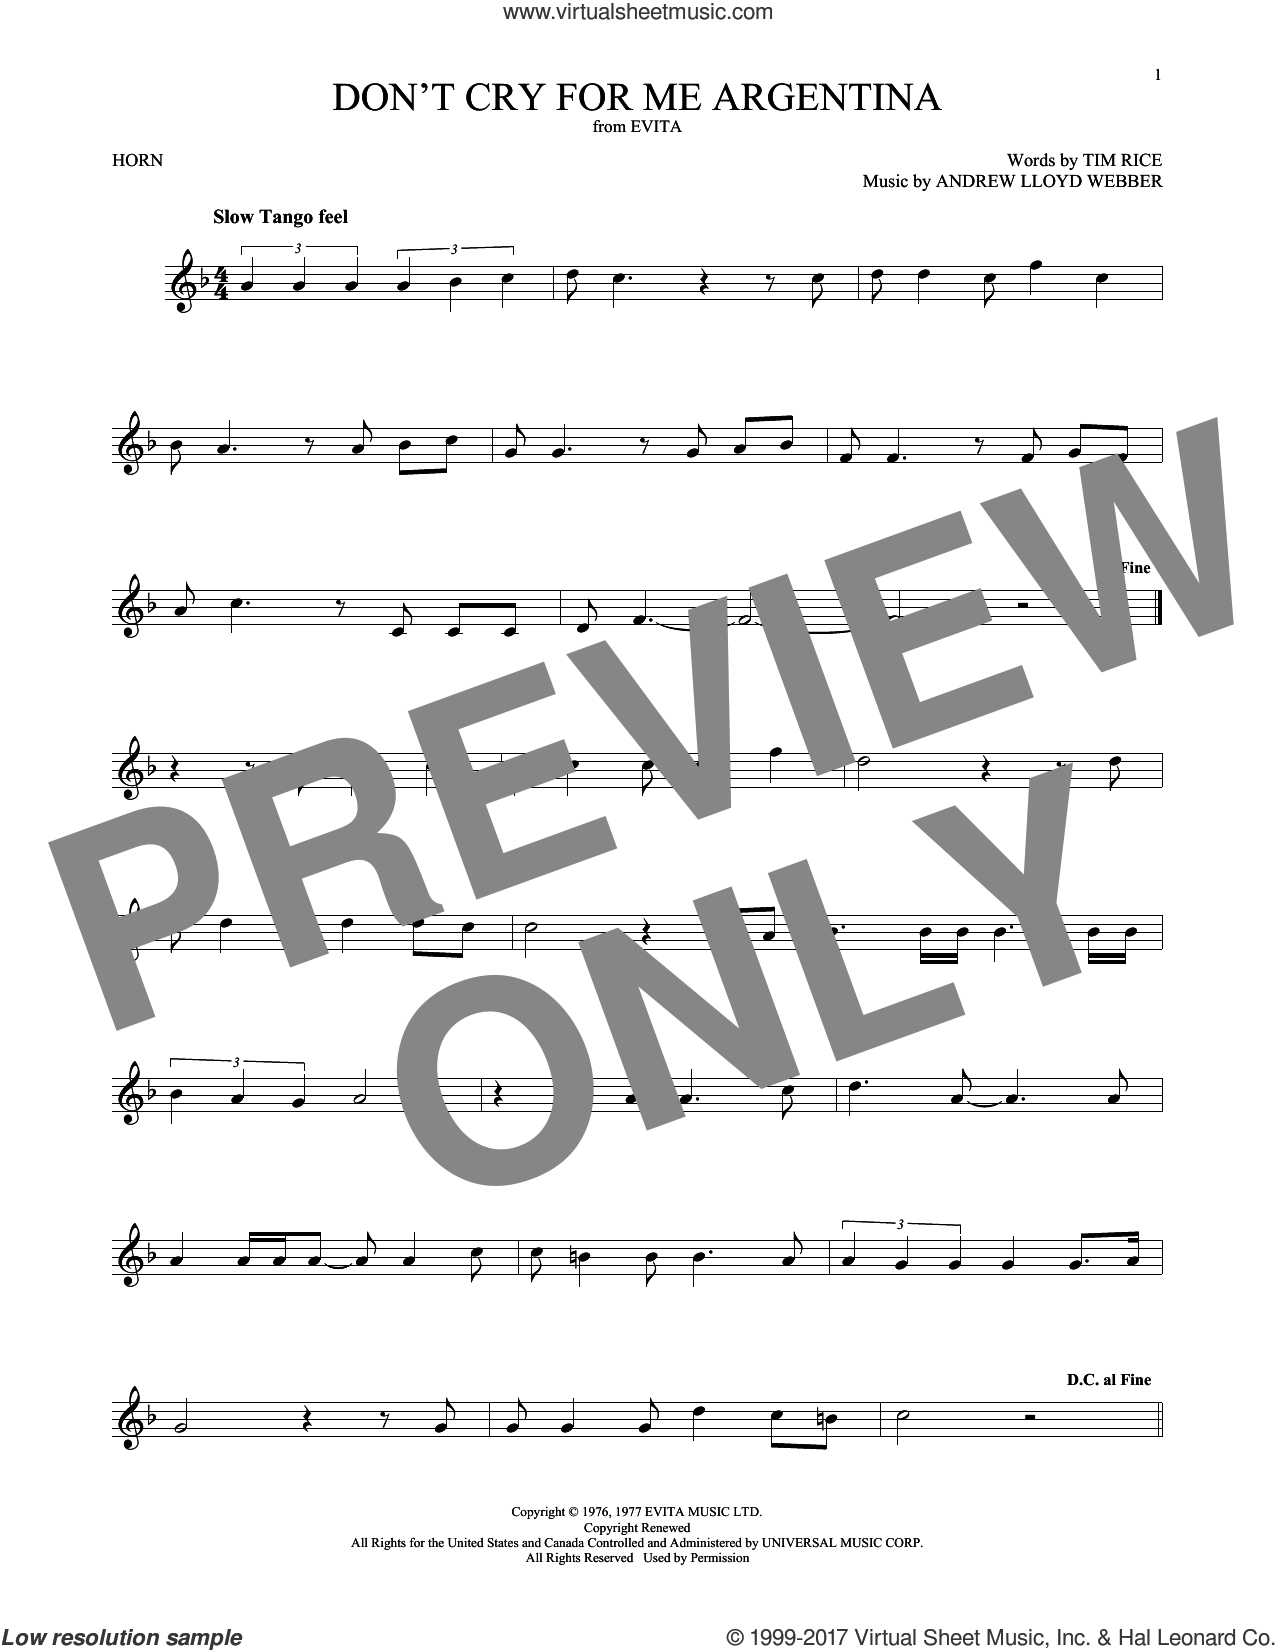 Don't Cry For Me Argentina sheet music for horn solo by Andrew Lloyd Webber, Madonna and Tim Rice, intermediate skill level